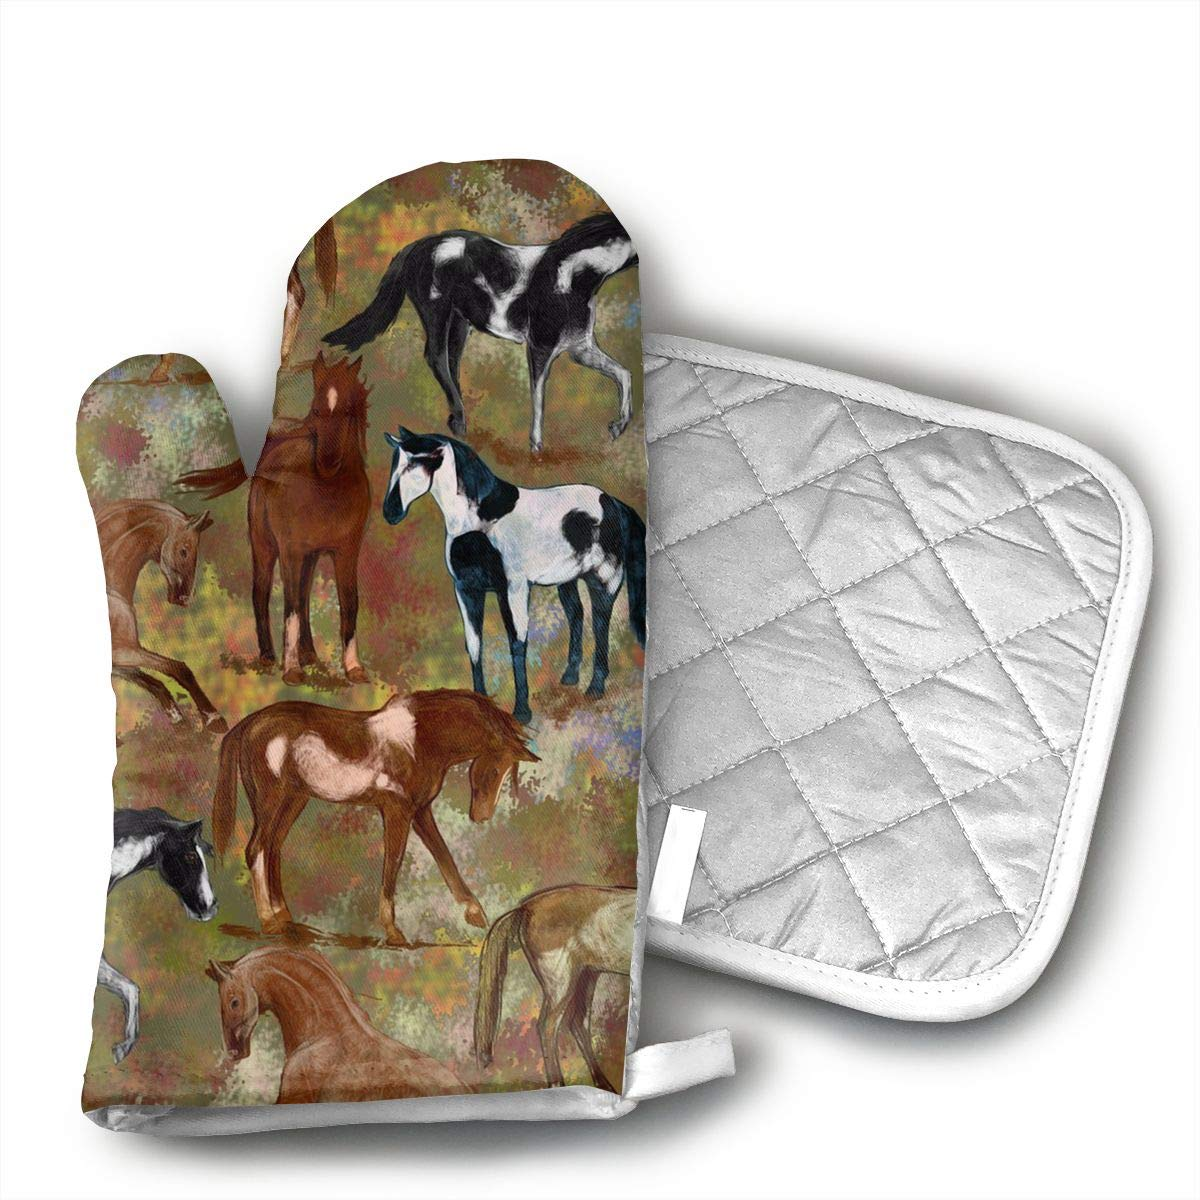 Ubnz17X Autumn Horses Oven Mitts and Pot Holders for Kitchen Set with Cotton Non-Slip Grip,Heat Resistant